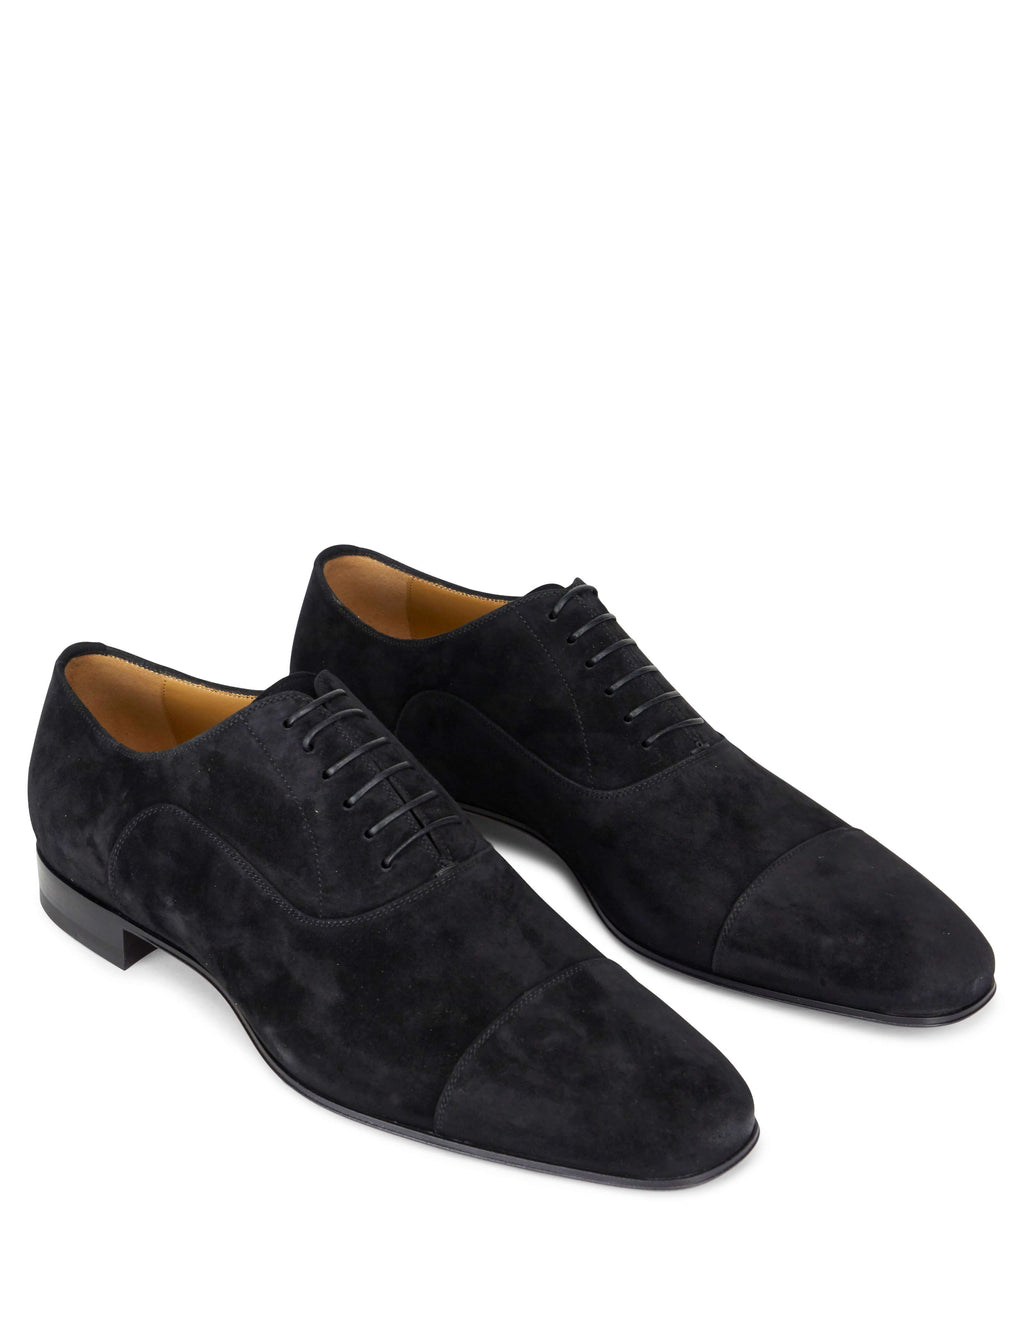 newest 4aadd a544e Greggo Flat Oxford Shoes - 43